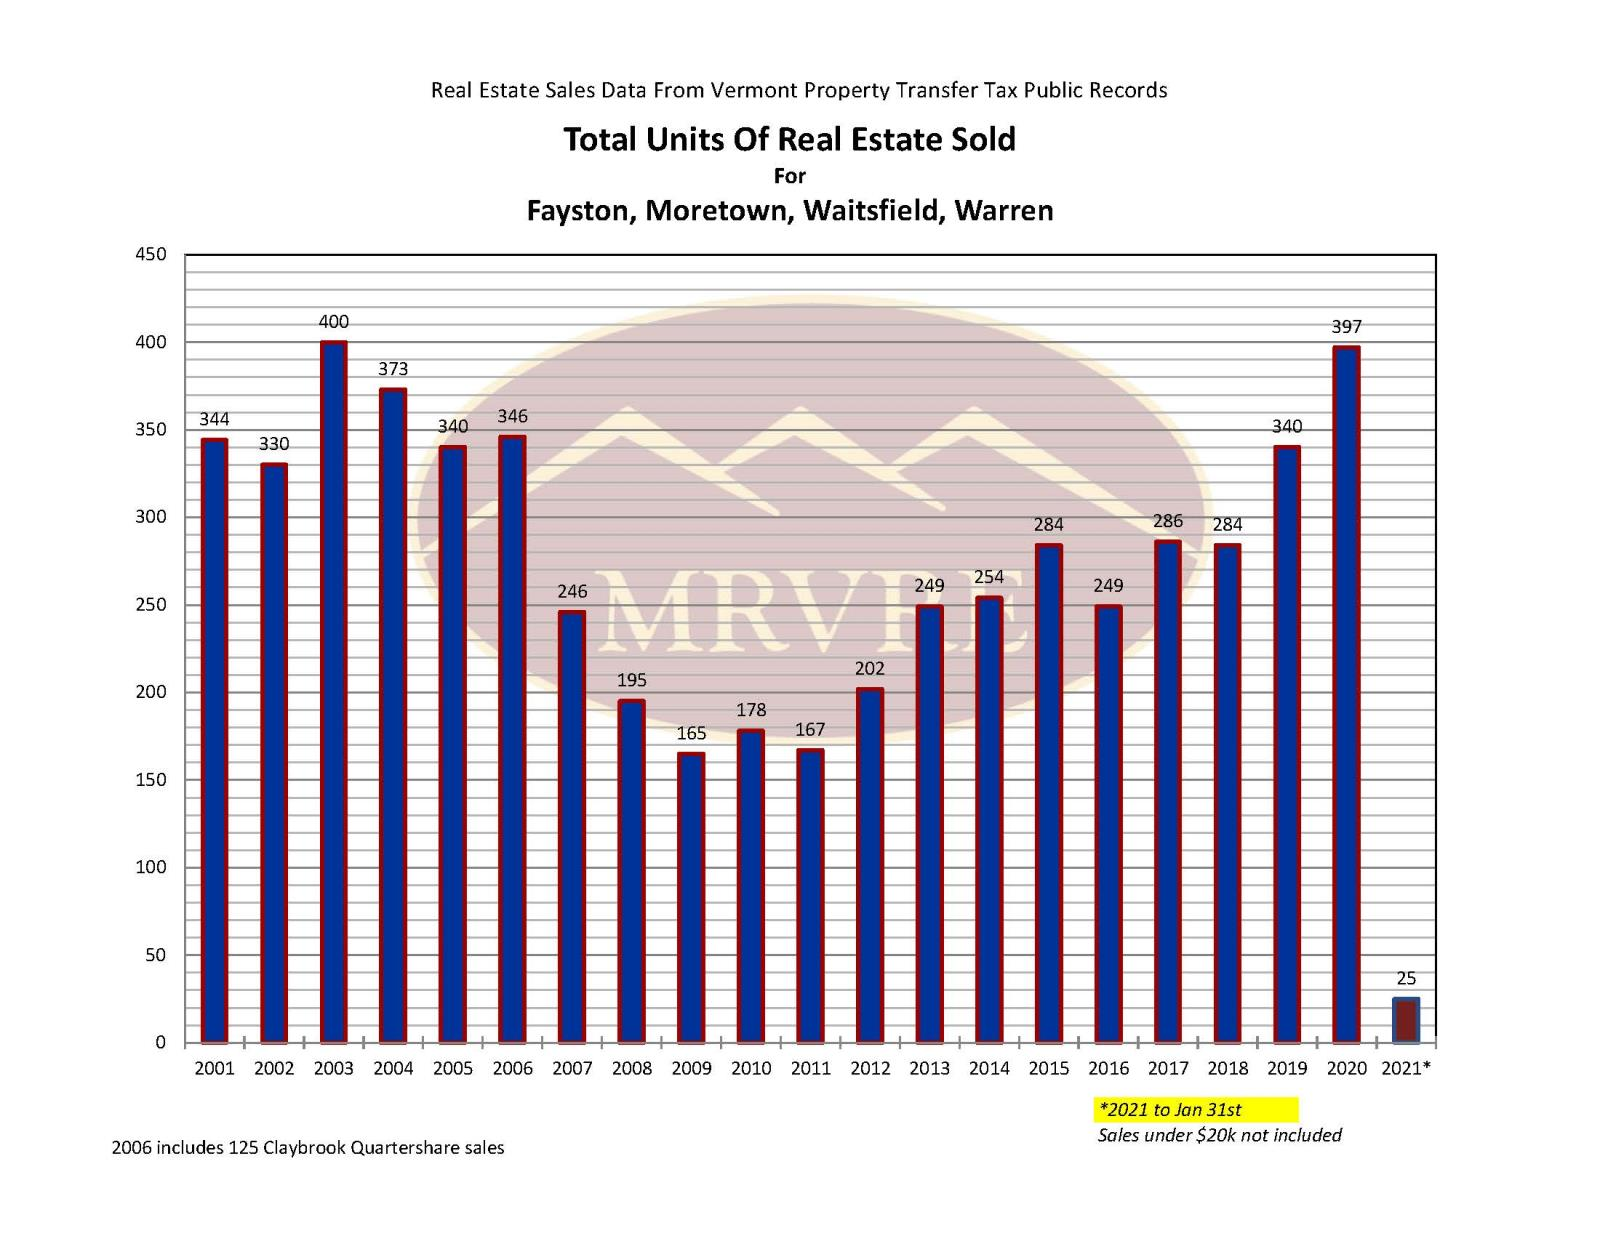 2021 Total Units Sold